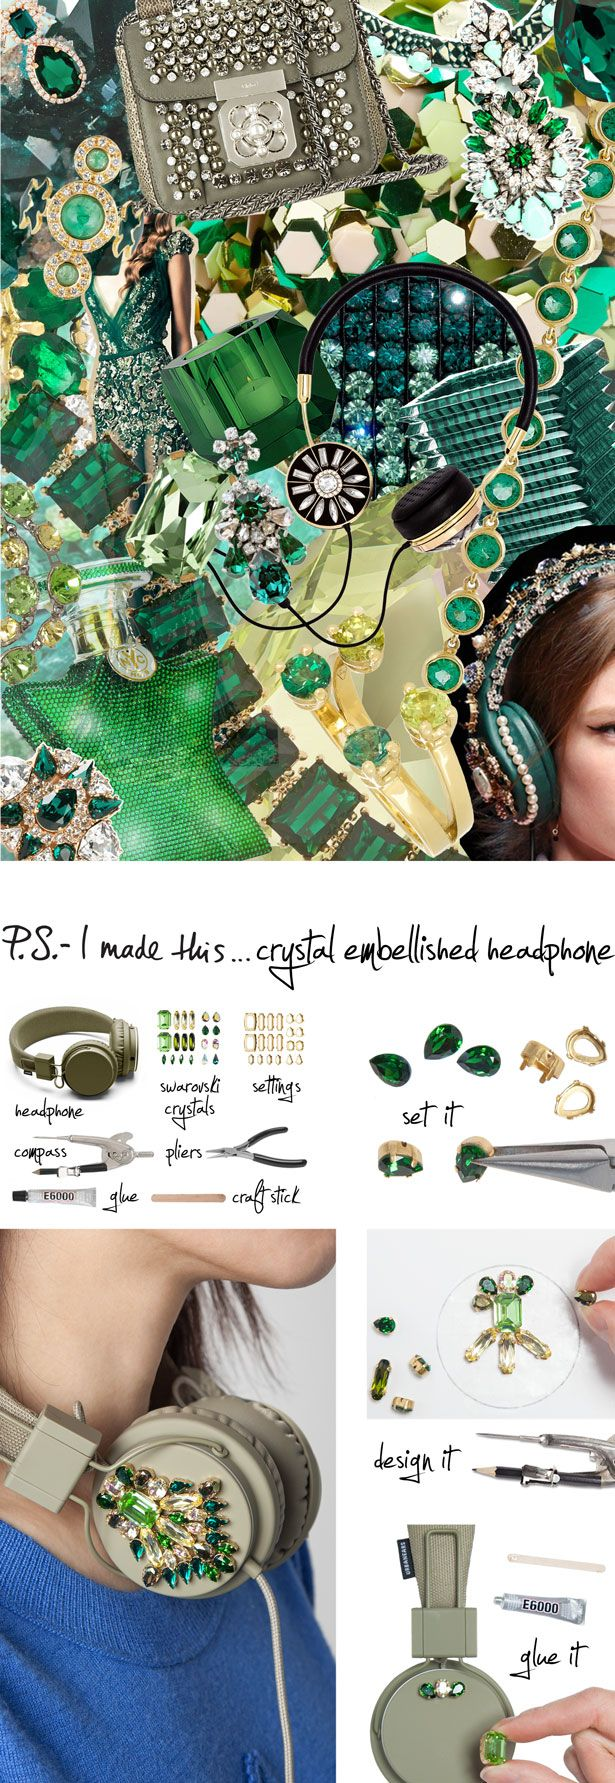 P.S.- I made this...Crystal Embellished Headphones #PSIMADETHIS #DIY